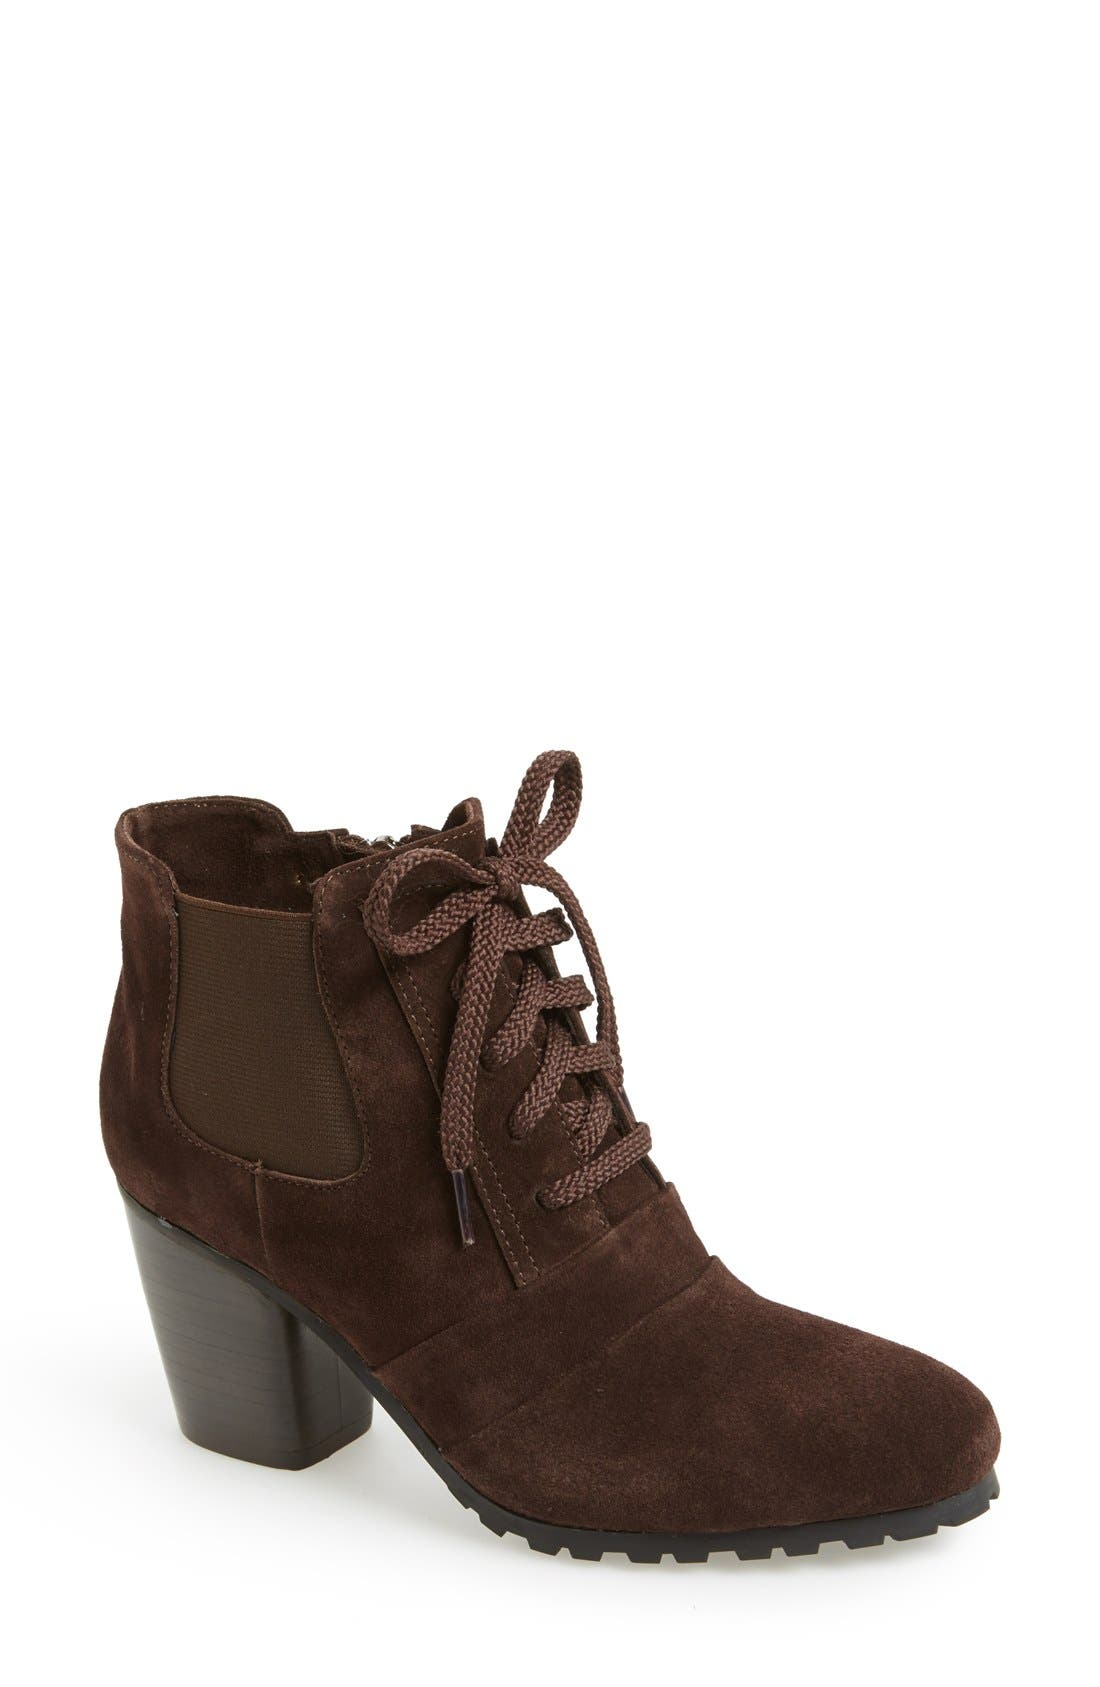 Alternate Image 1 Selected - VANELi 'Forrie' Lace Up Suede Bootie (Women)